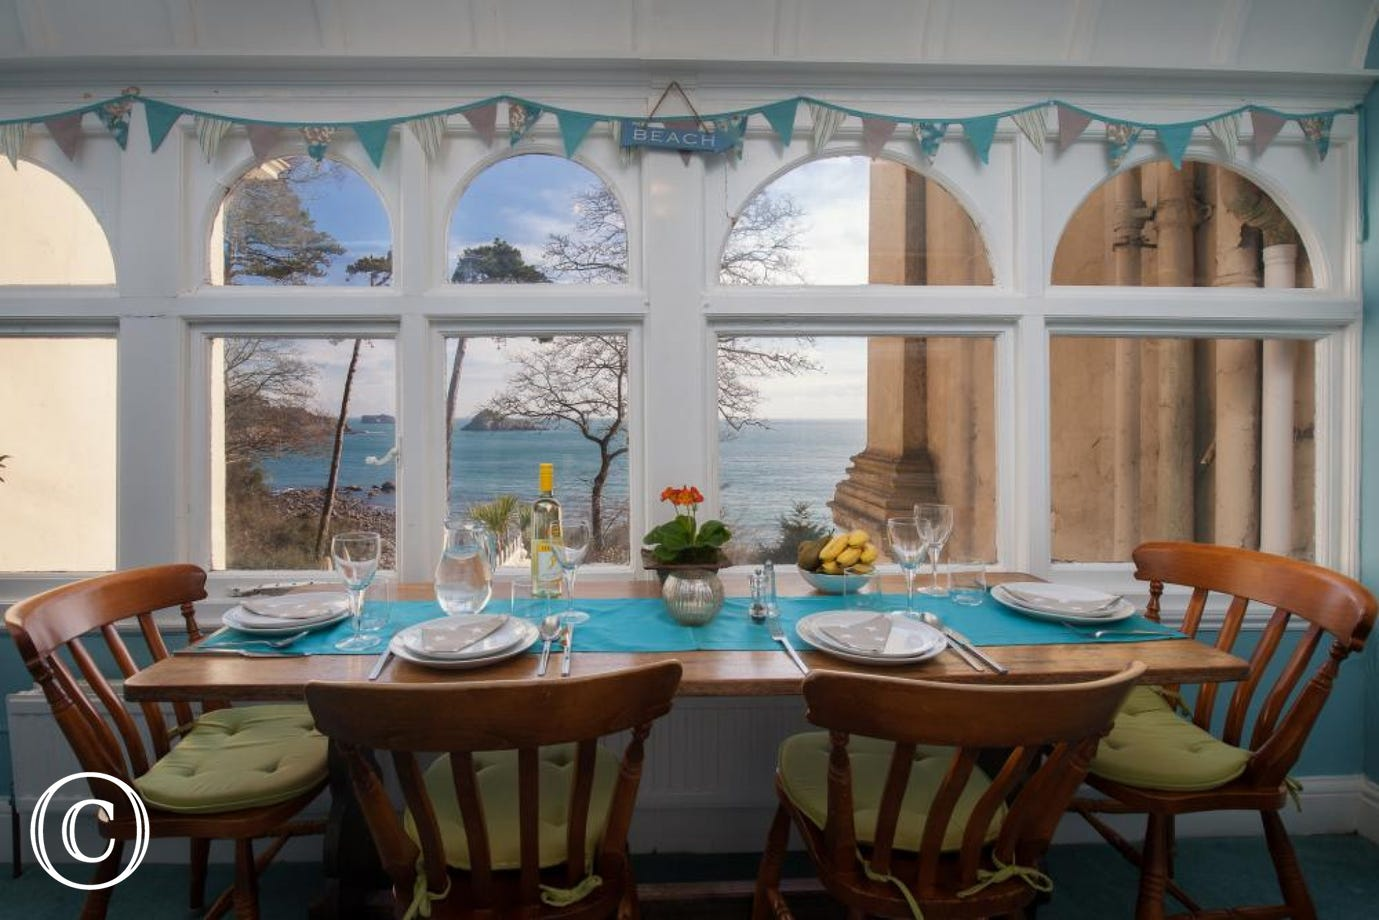 Beautiful Sea Views from the Dining Area/Entrance to the Apartment